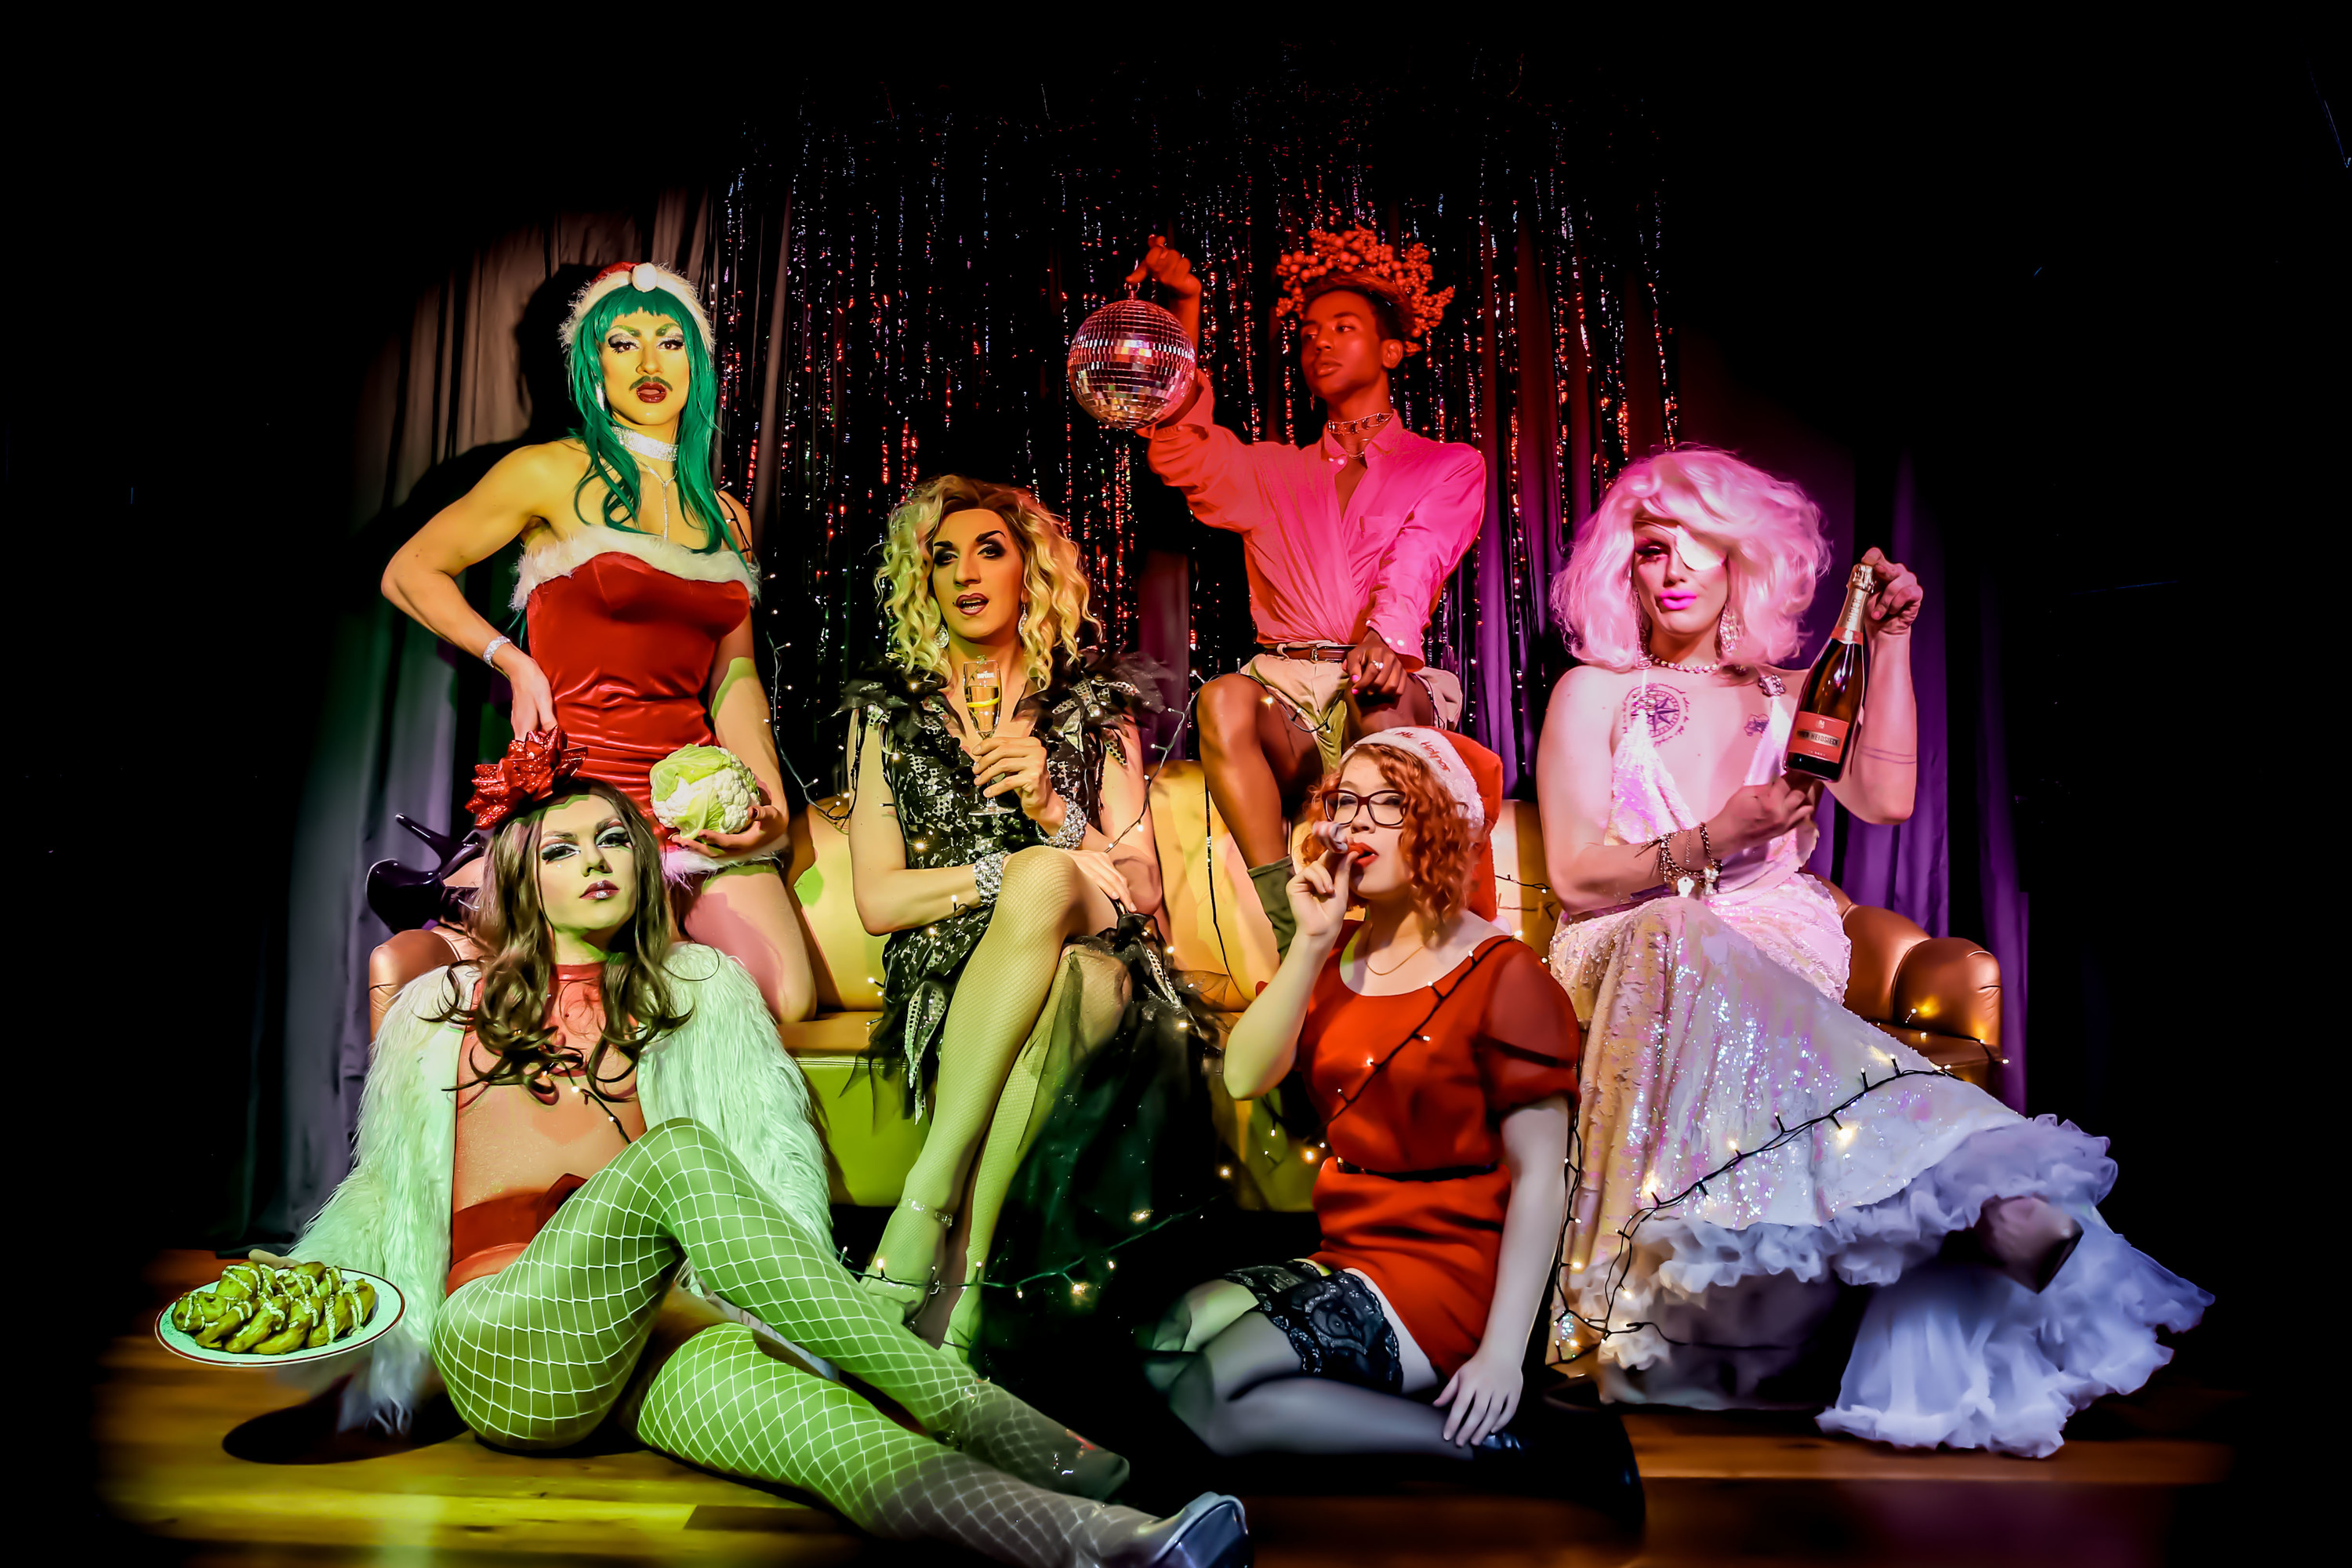 Drag queens pose in Christmas outfits.